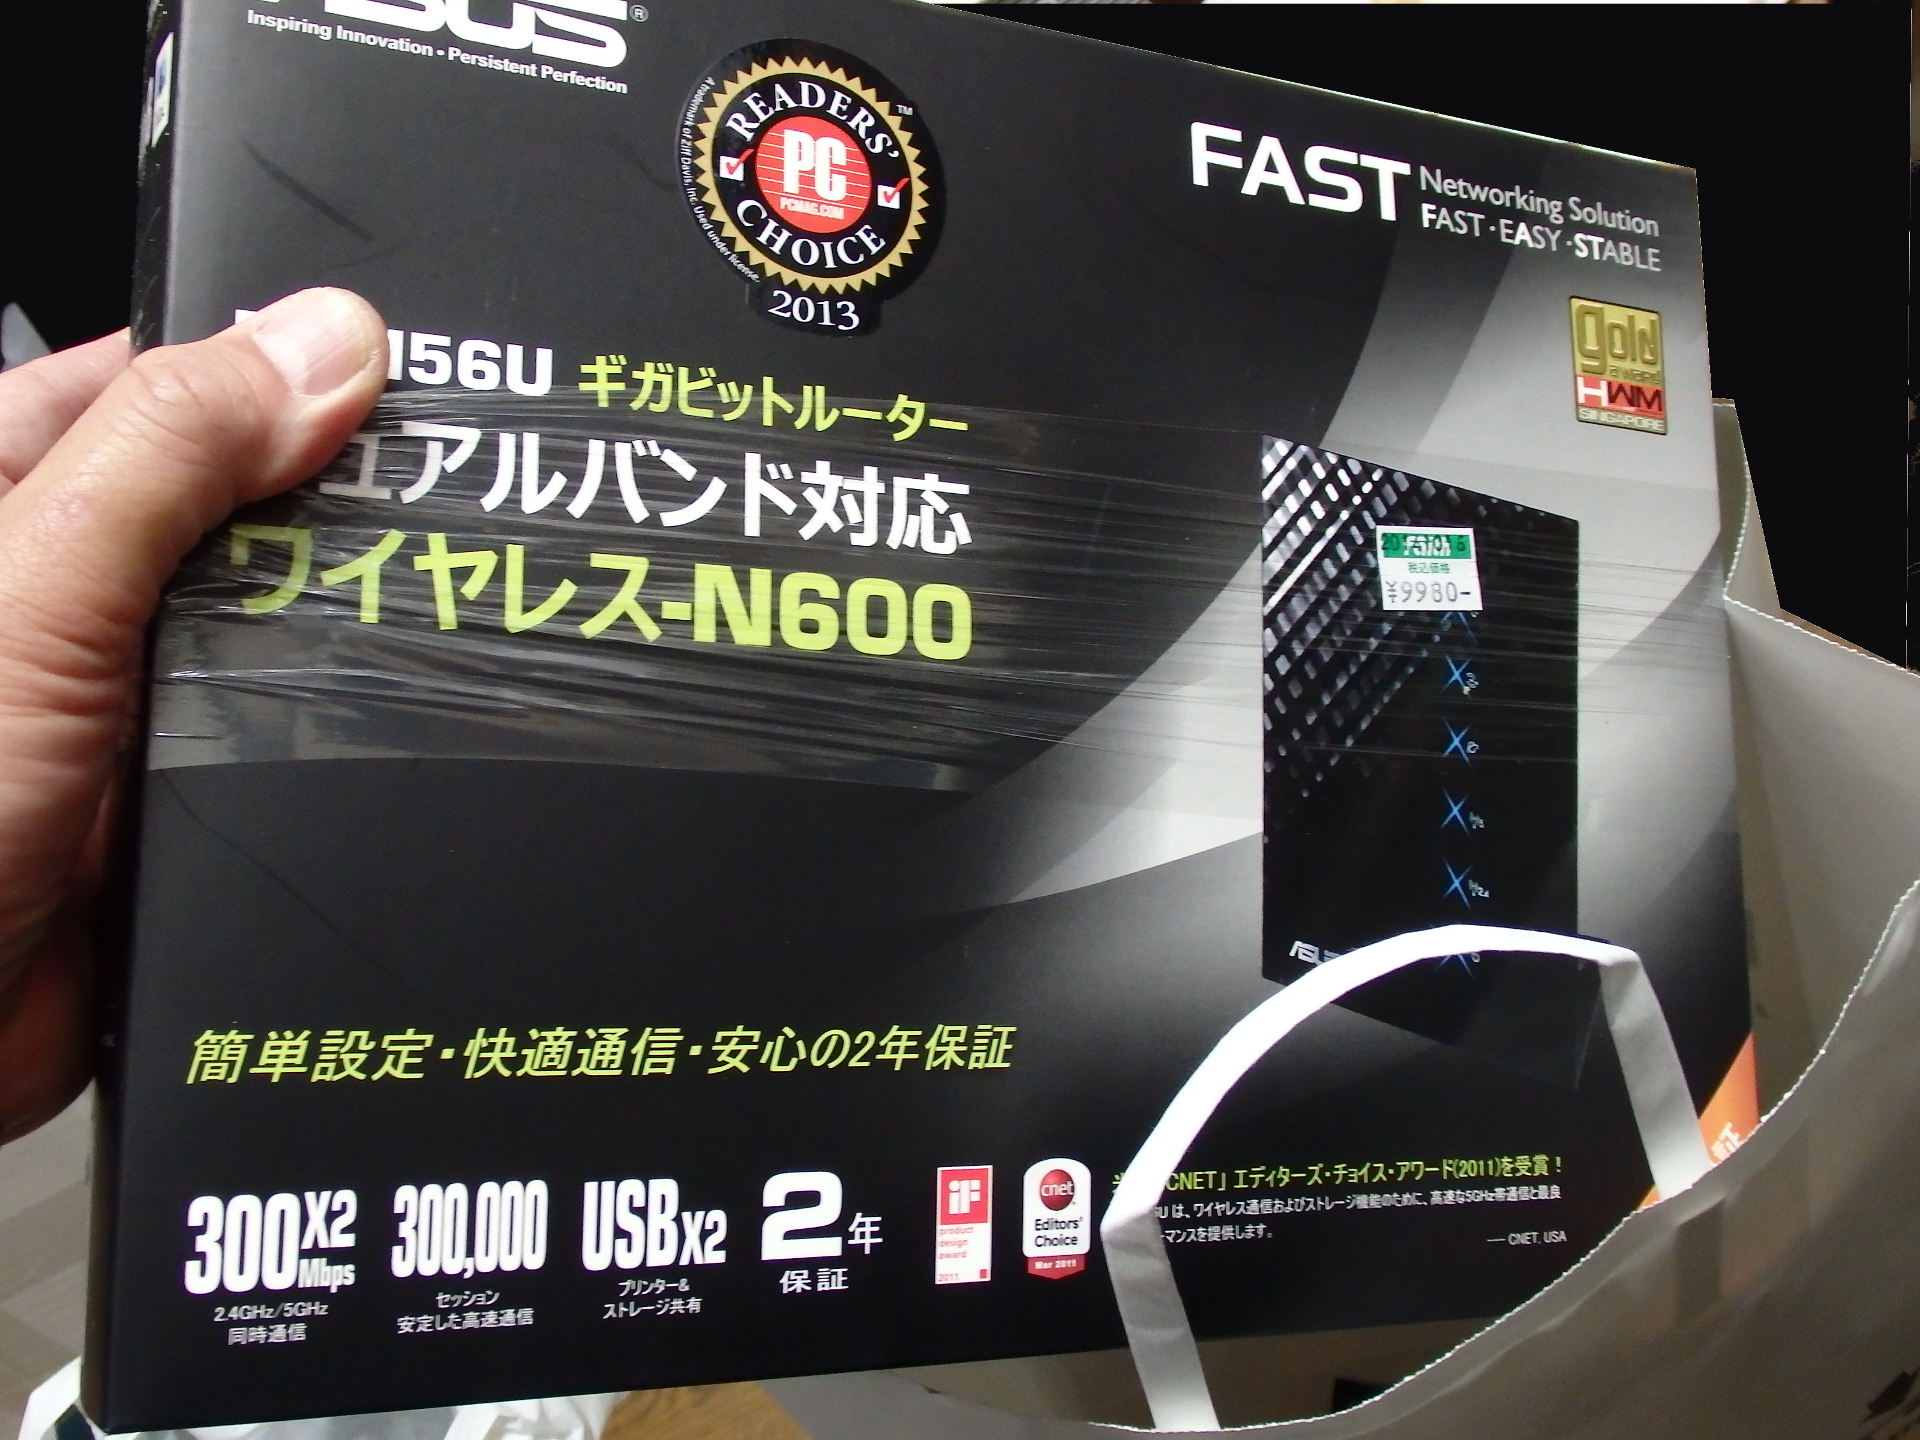 ASUS製ルータを買いました。